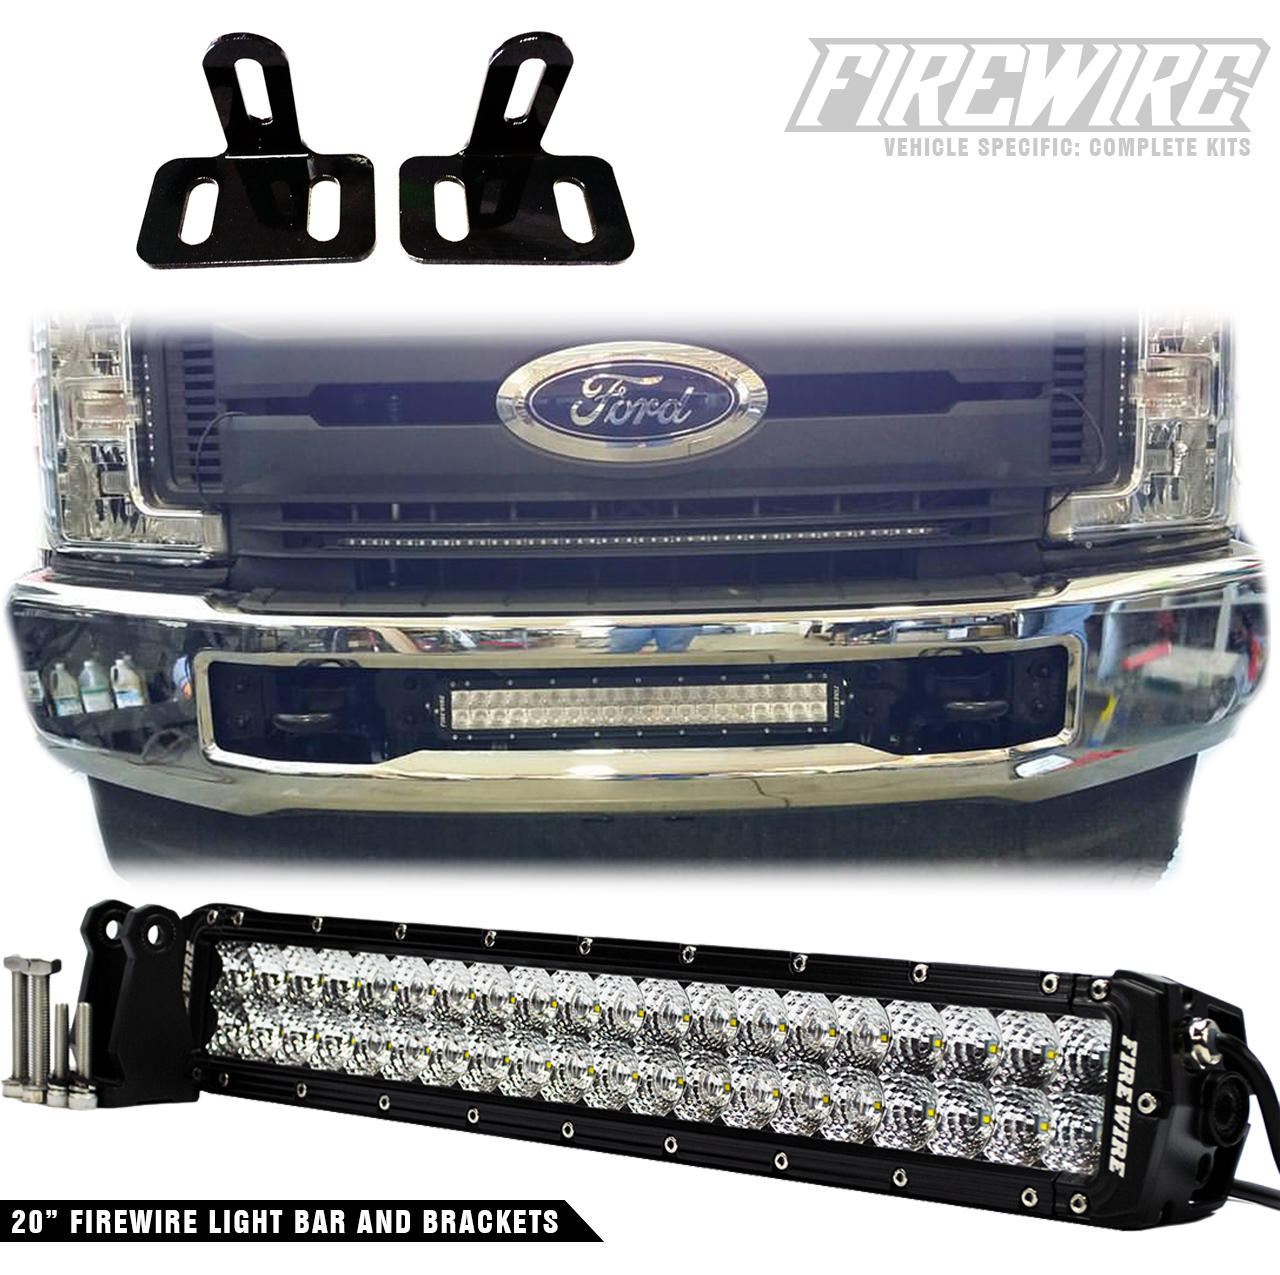 hight resolution of firewire led would like to introduce our newest product the 2017 ford super duty bumper light bar kit this light bar kit includes a 20 inch light bar and